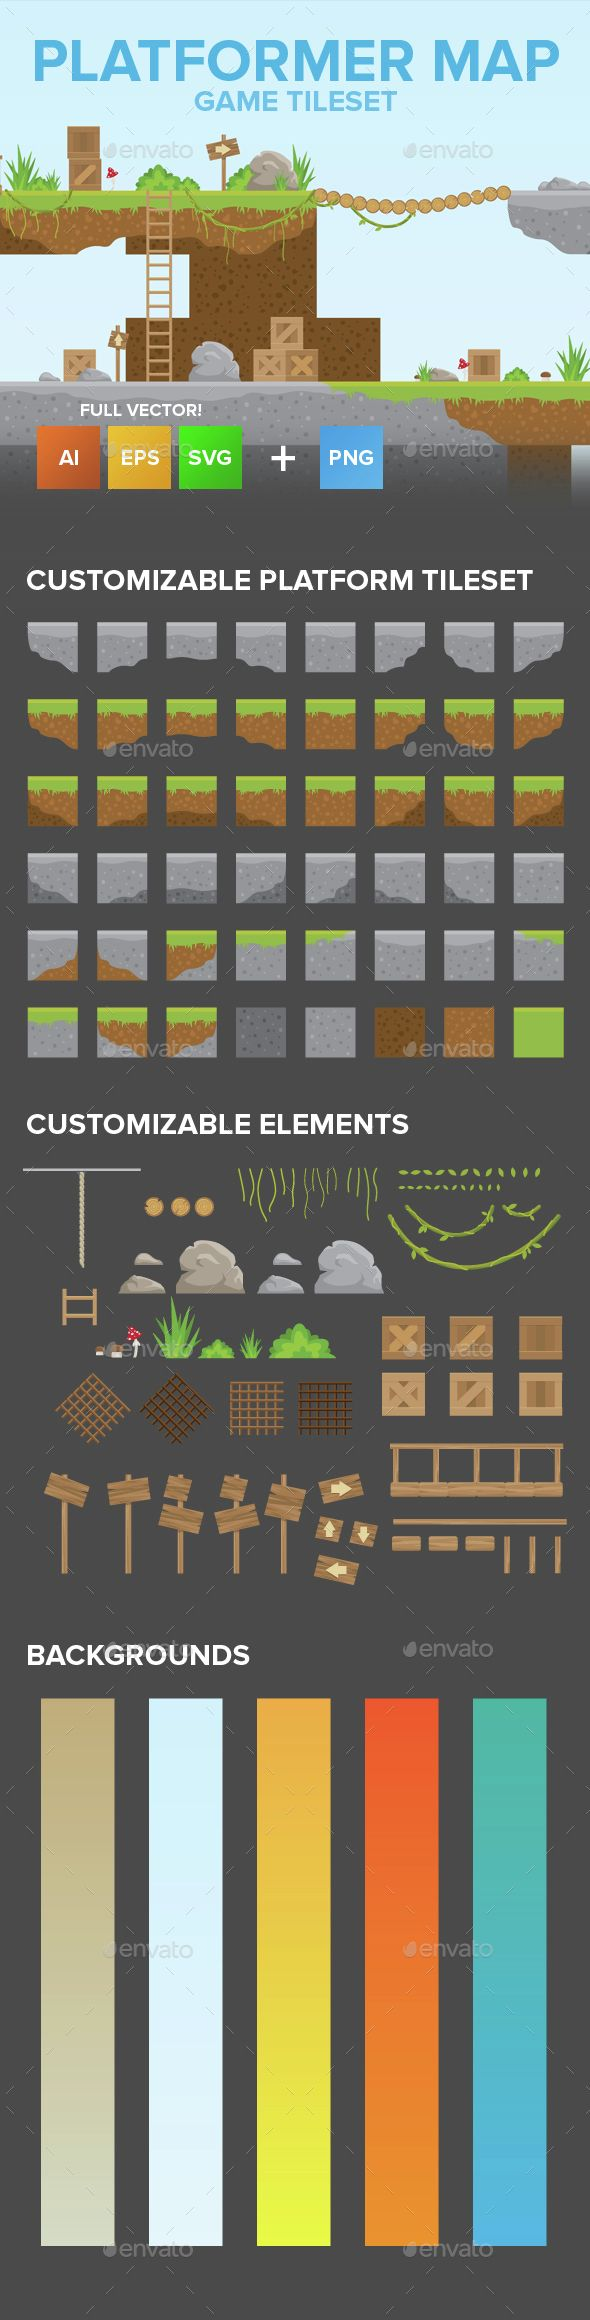 2D Game Platformer Tilesets — Vector EPS #tileable #modern • Available here → https://graphicriver.net/item/2d-game-platformer-tilesets/15147637?ref=pxcr